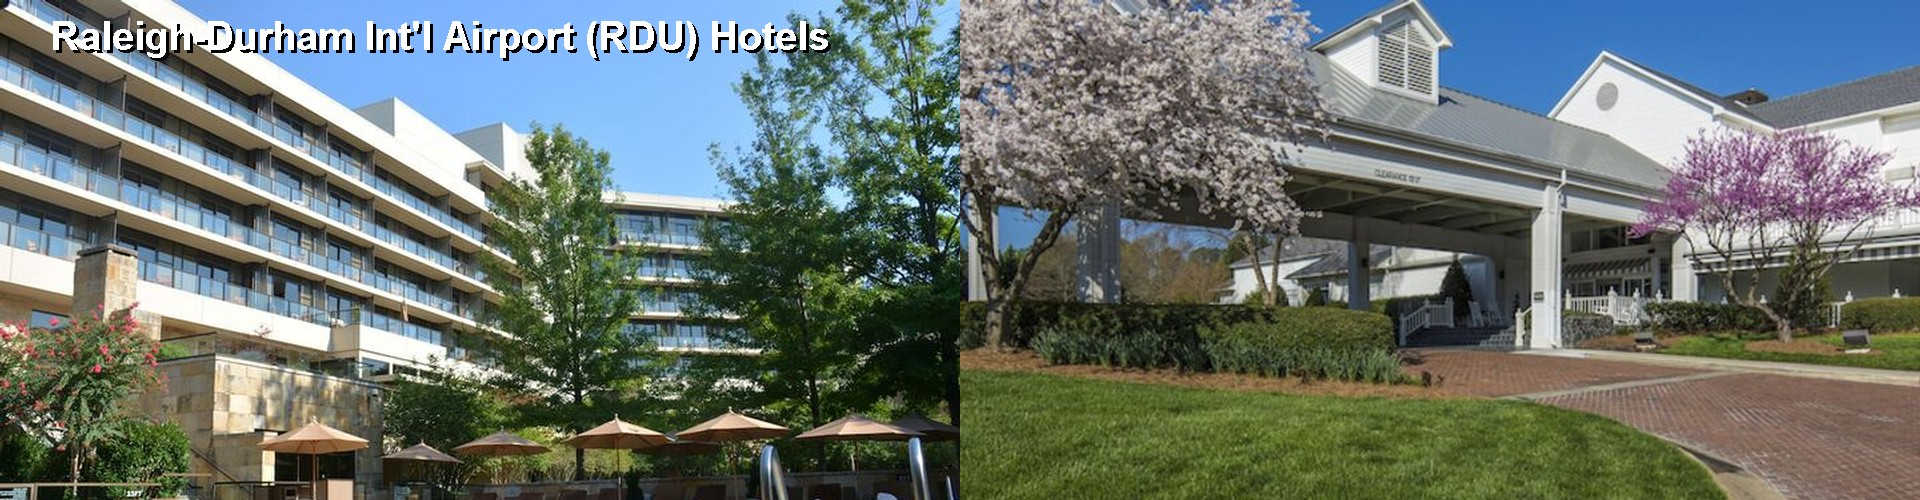 5 Best Hotels Near Raleigh Durham Int L Airport Rdu